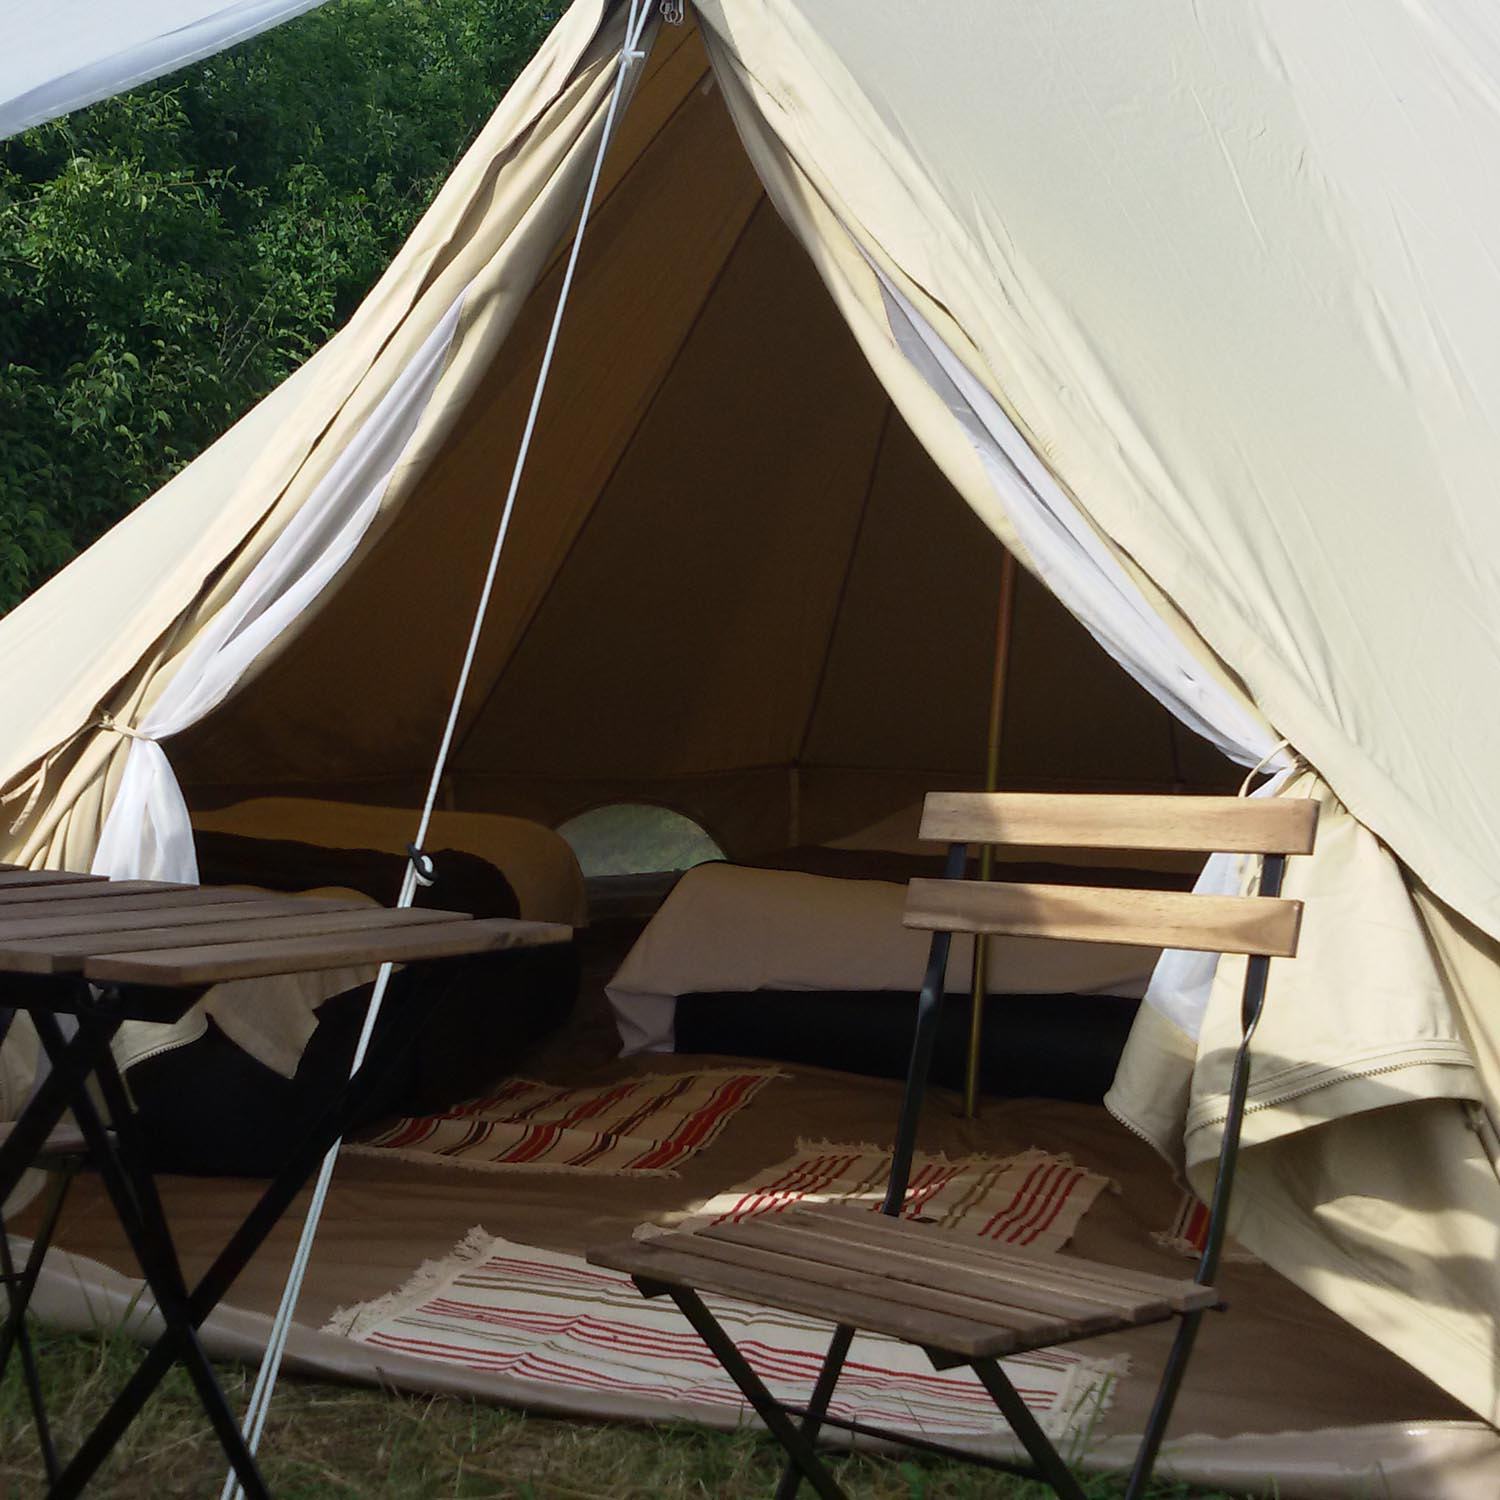 Glamping sátor 1-4 főre